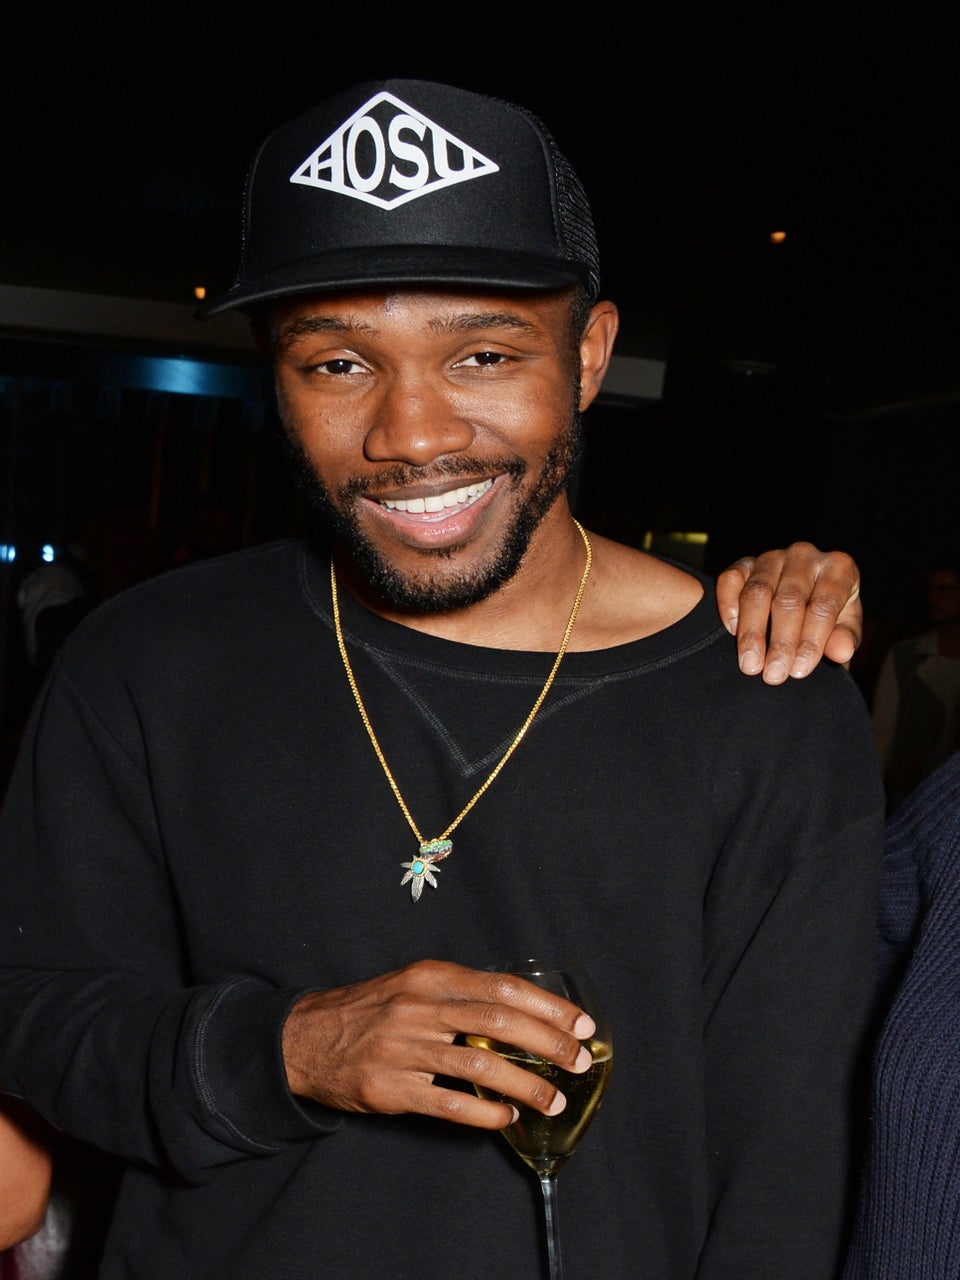 Frank Ocean's New Album Might Drop in a Month